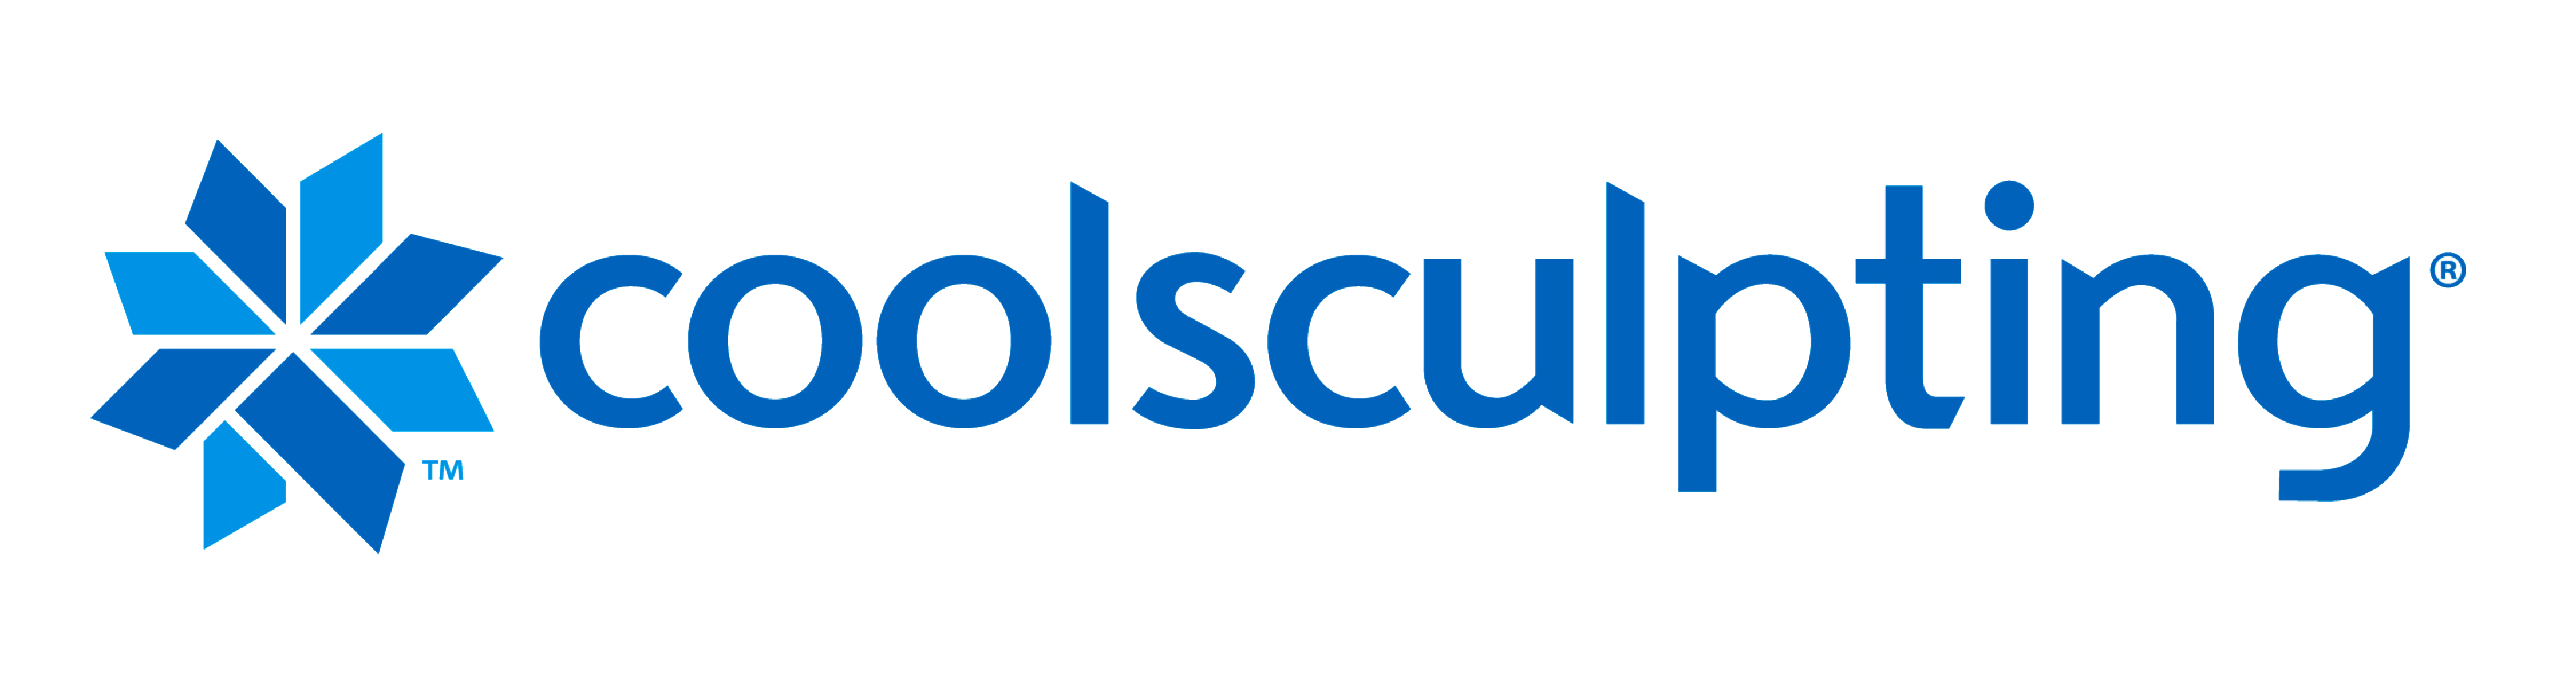 LOGO - COOLSCULPTING